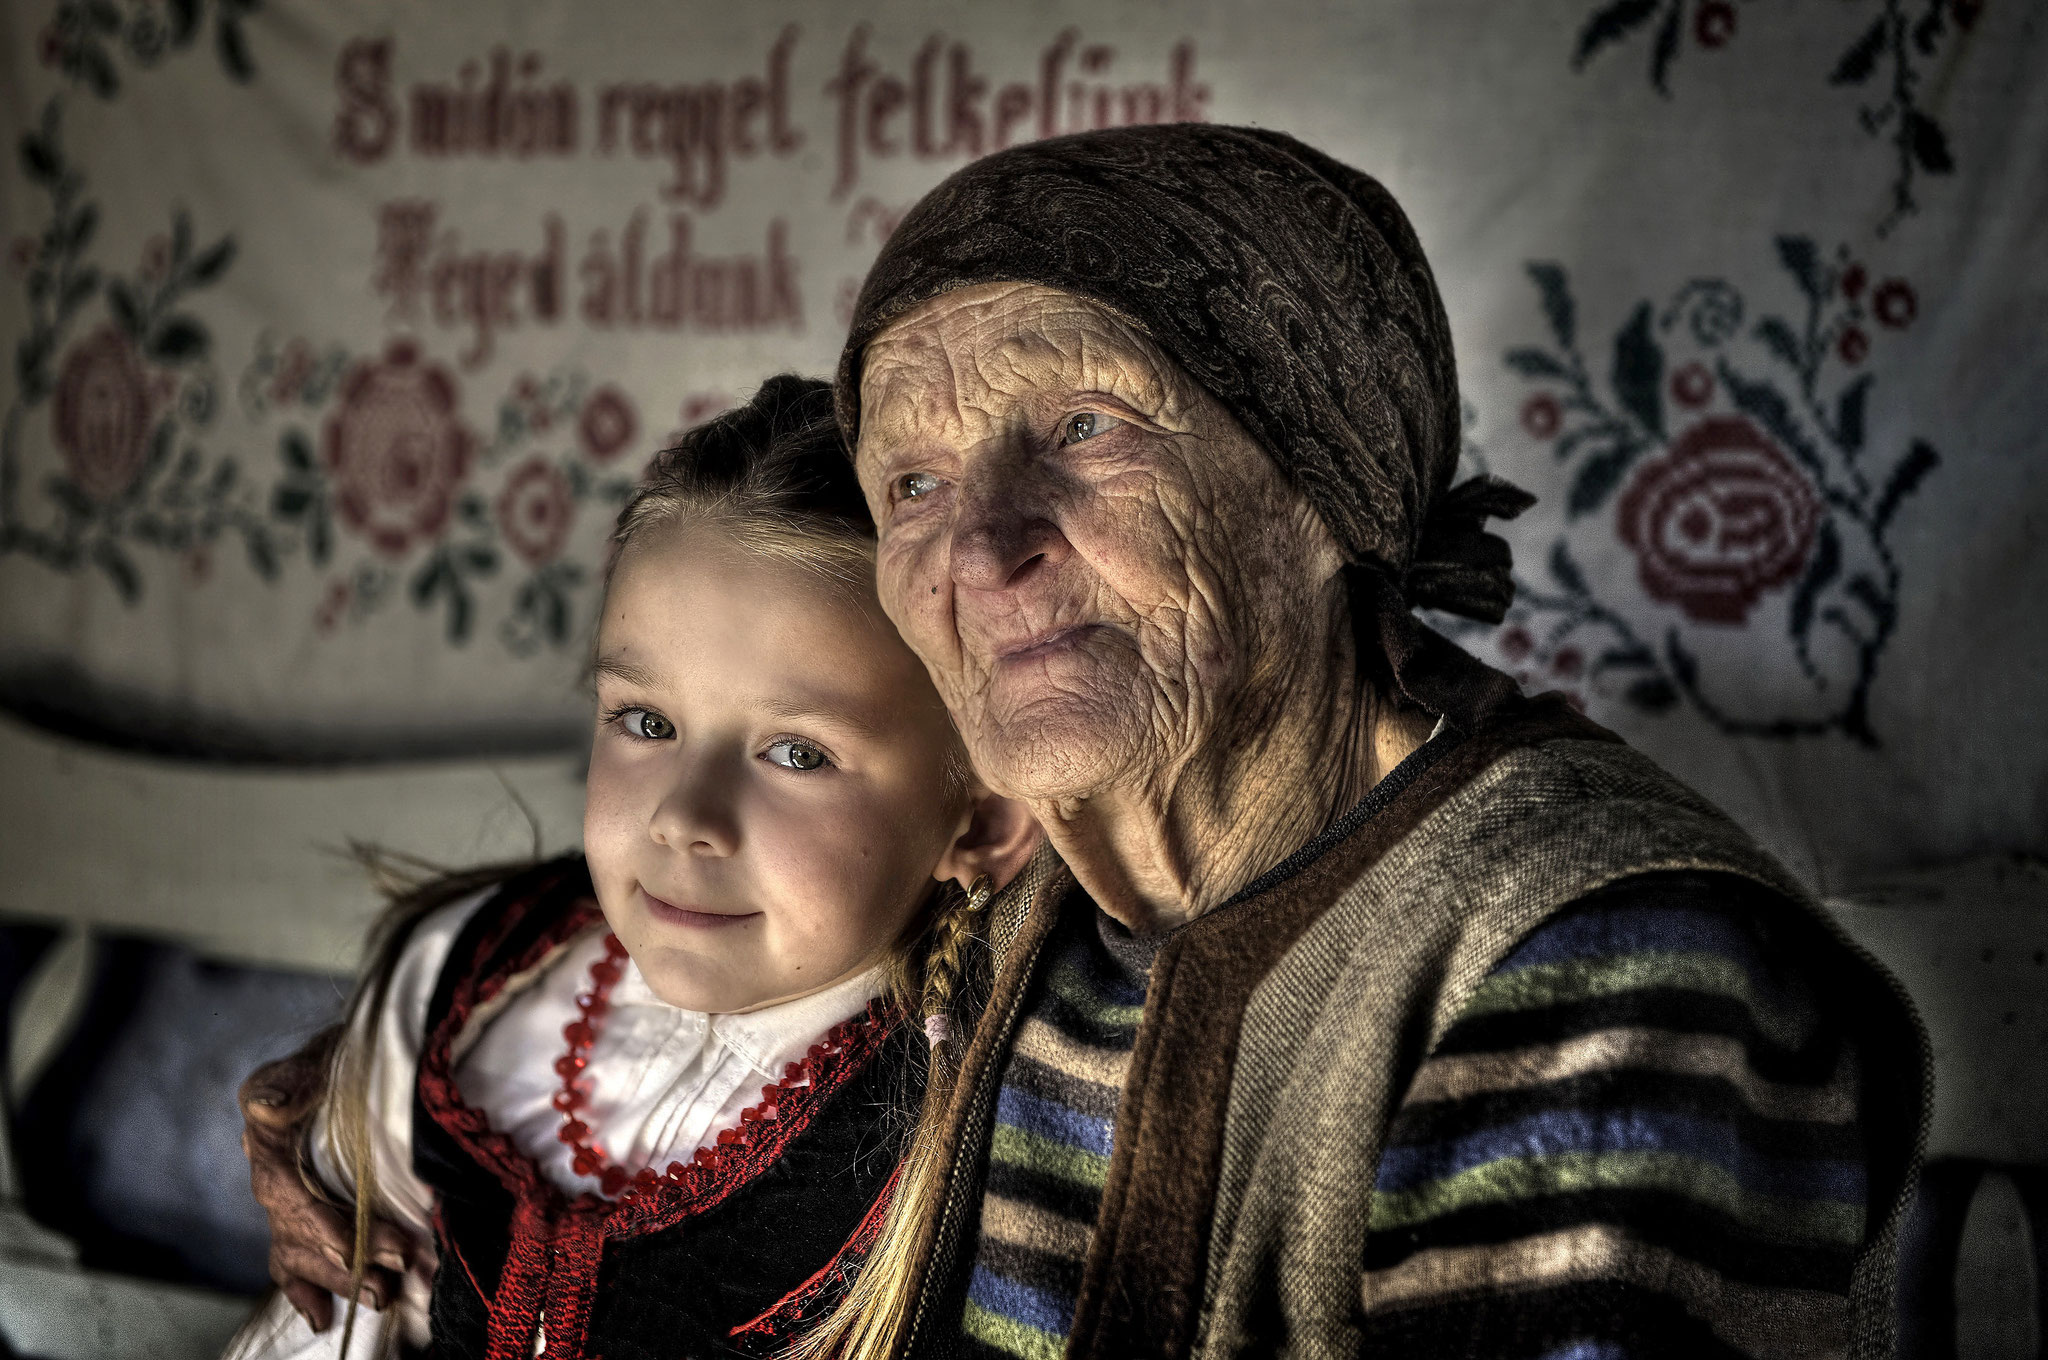 Tordai Ede EFIAPs (Romania) - With greatmother